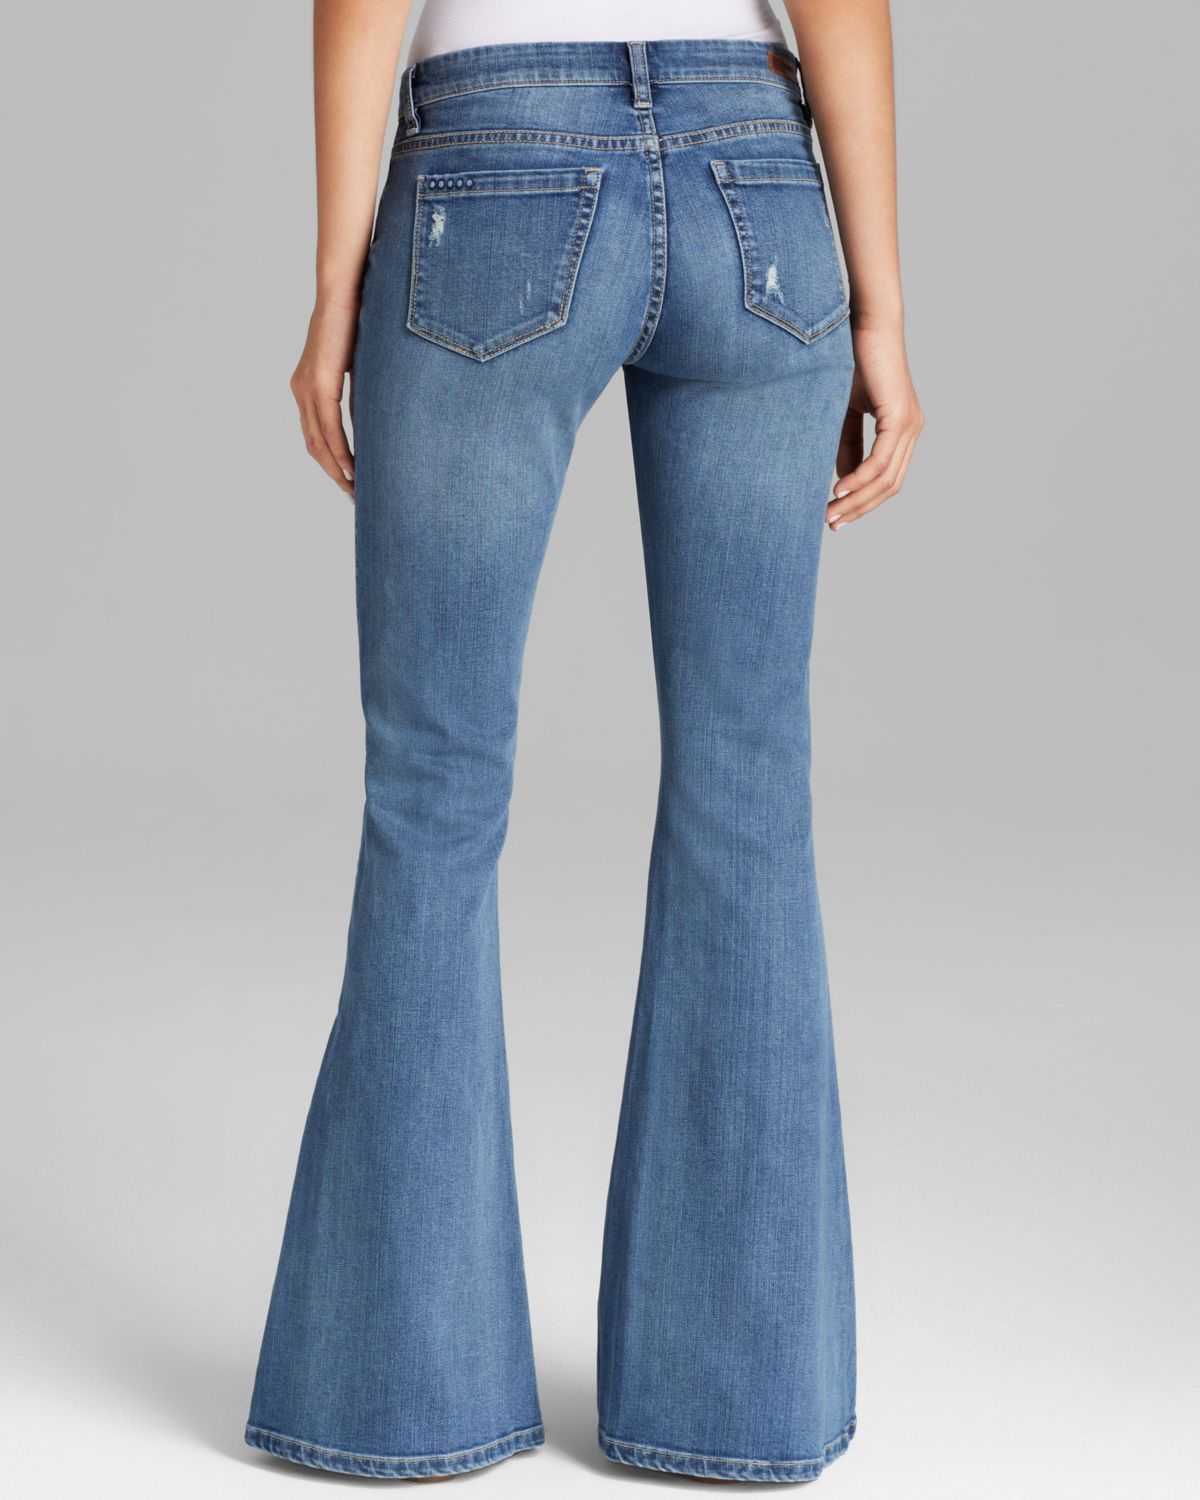 Blank Jeans Flare in Hipstercrite in Blue | Lyst